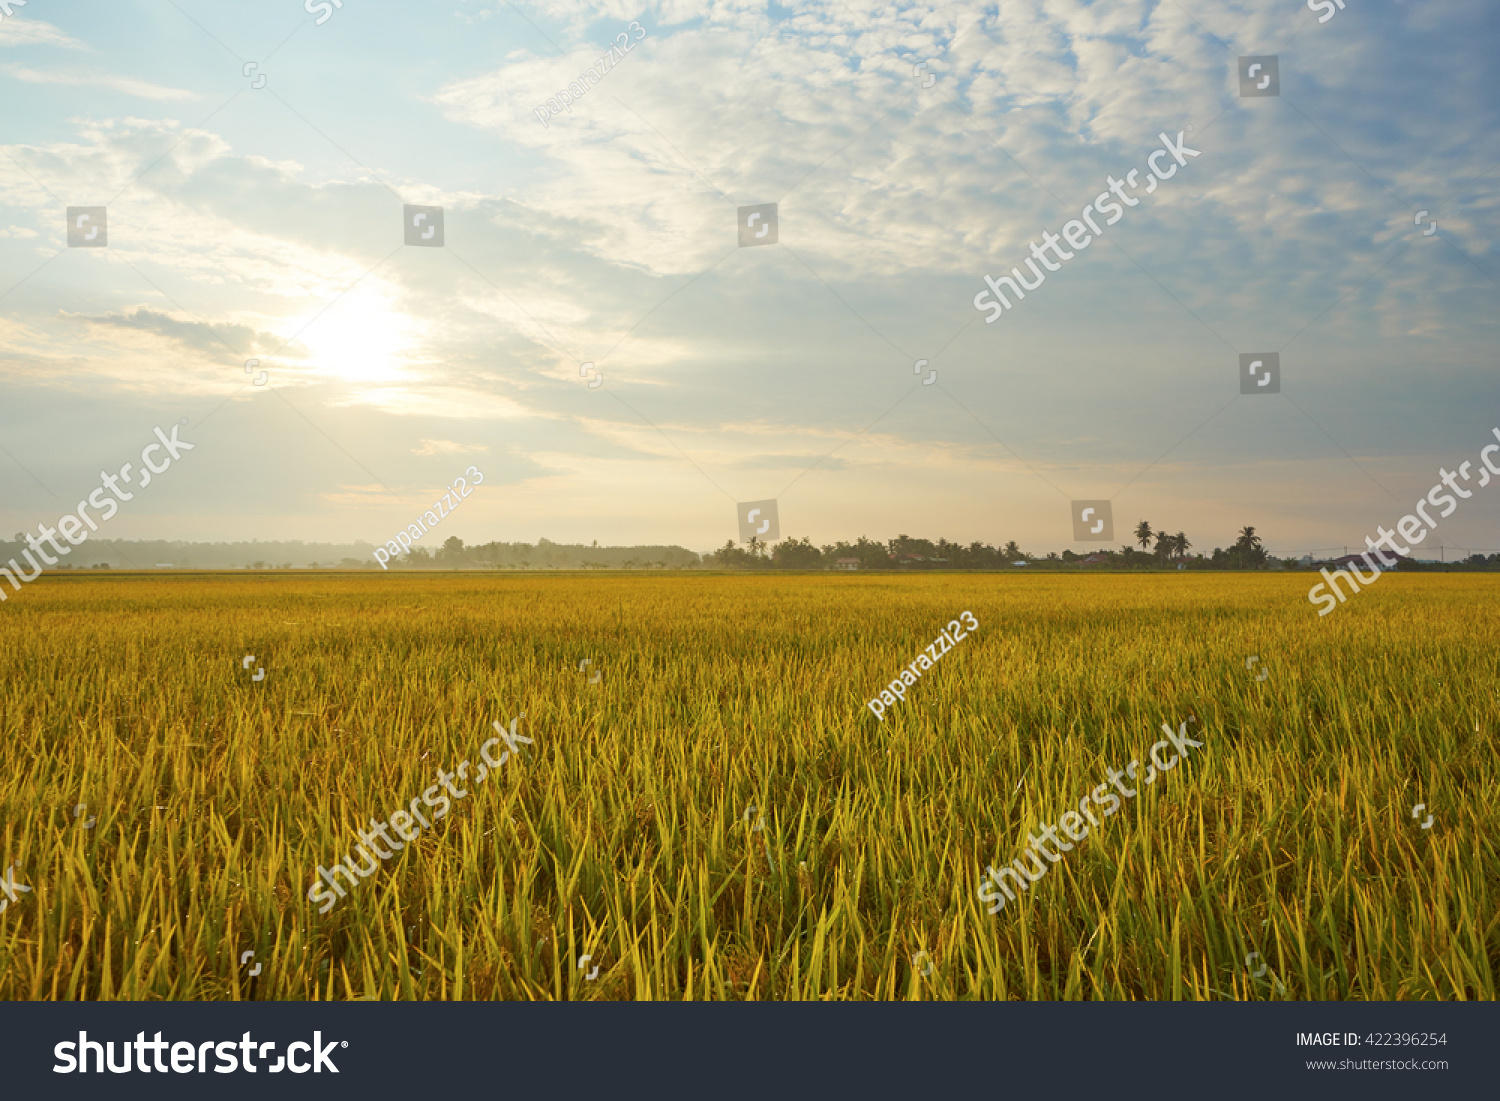 Landscape of rice field #422396254